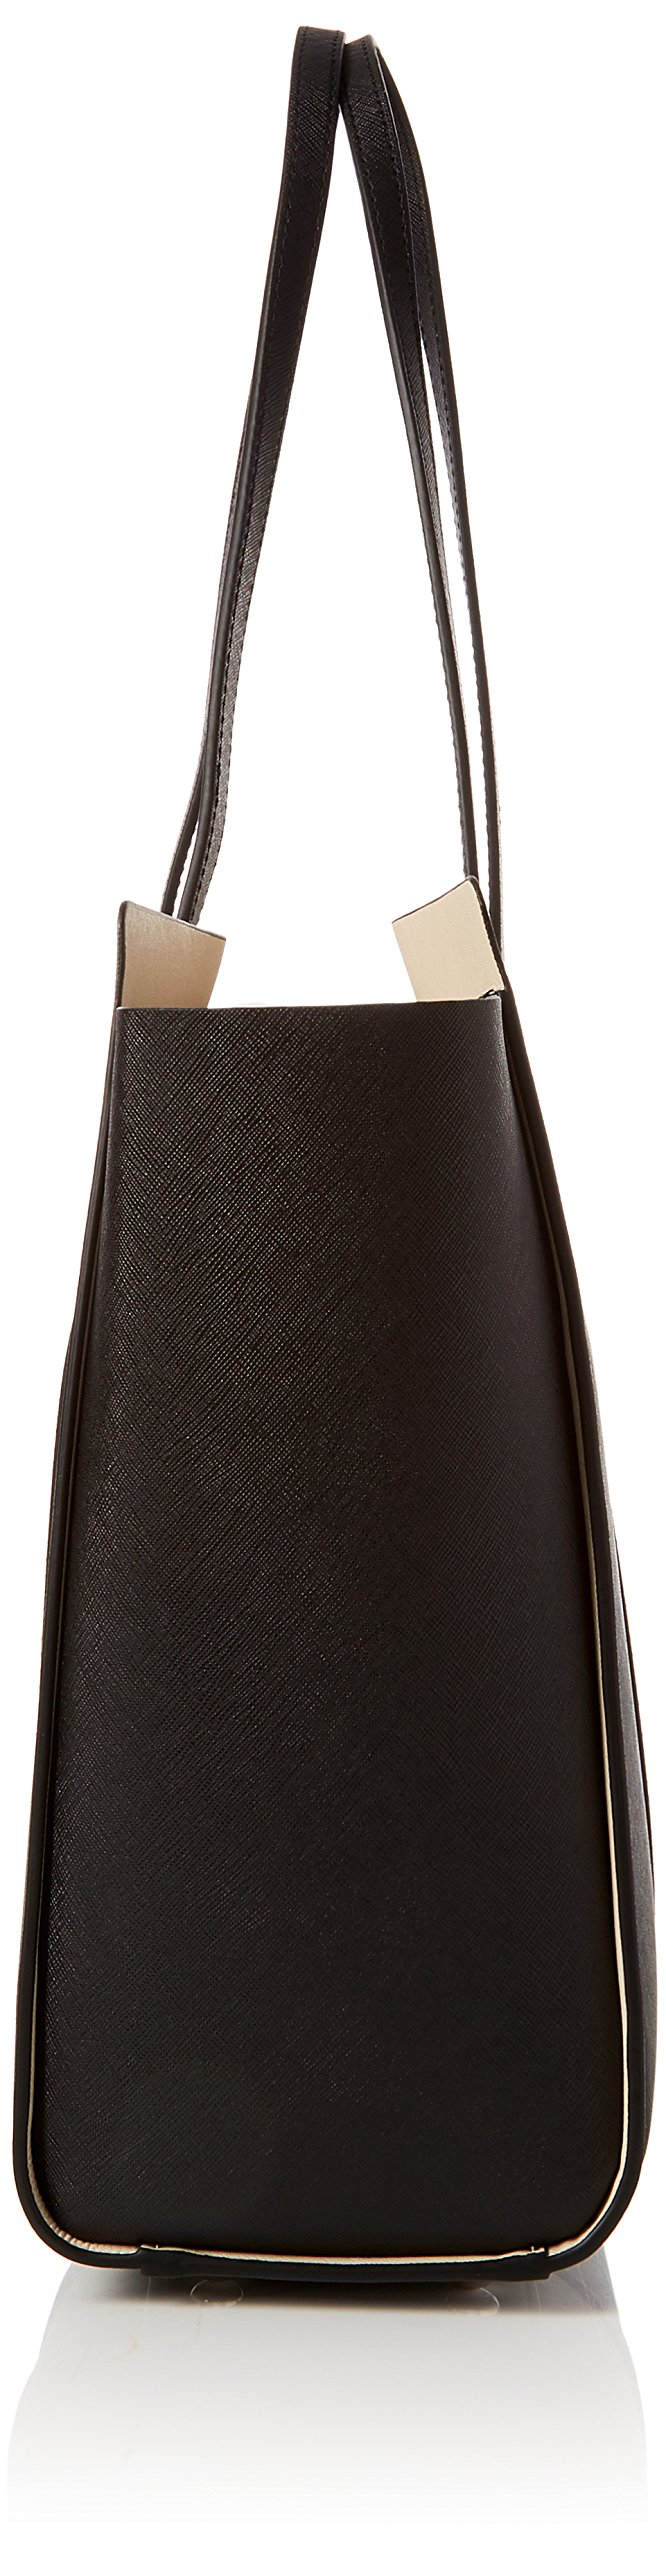 7e2a1eaf02c921 Tommy Hilfiger Modern Tommy Tote, Borse Tote Donna - Face Shop